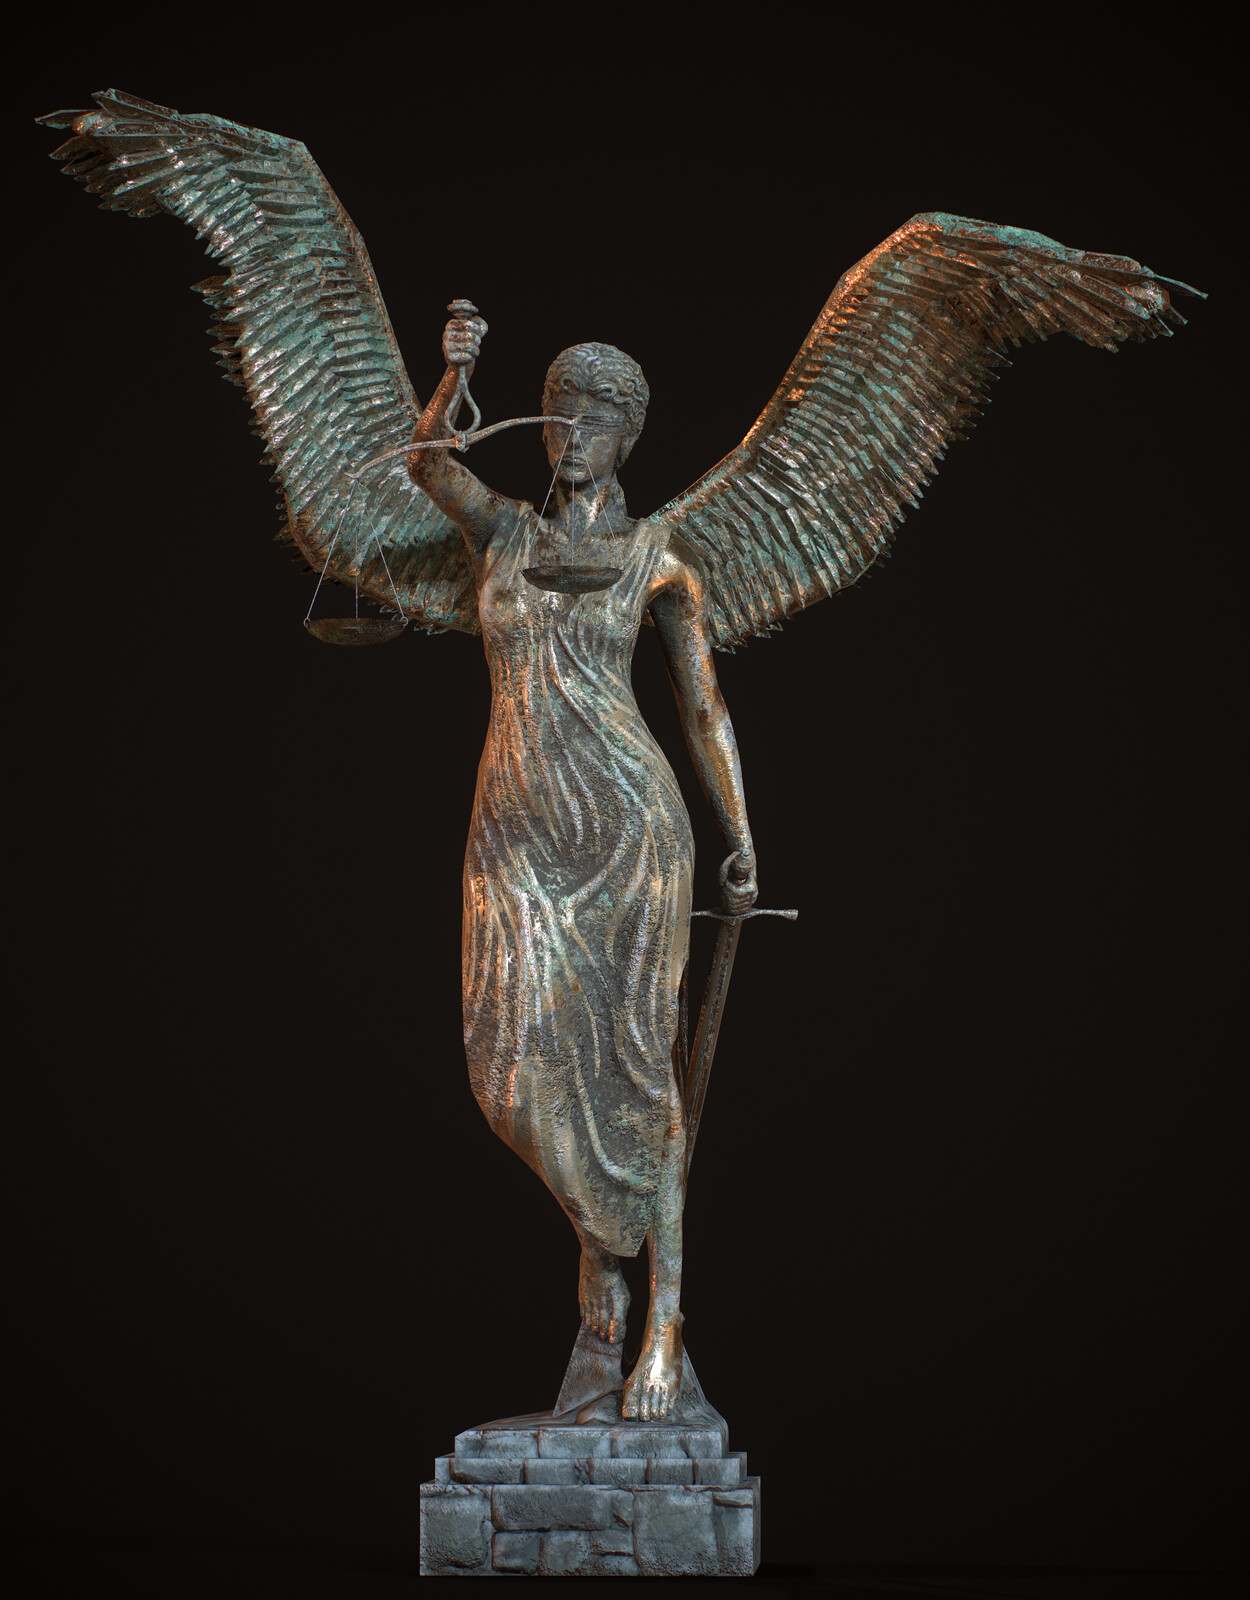 Angel of Justice - Blender timelapse video